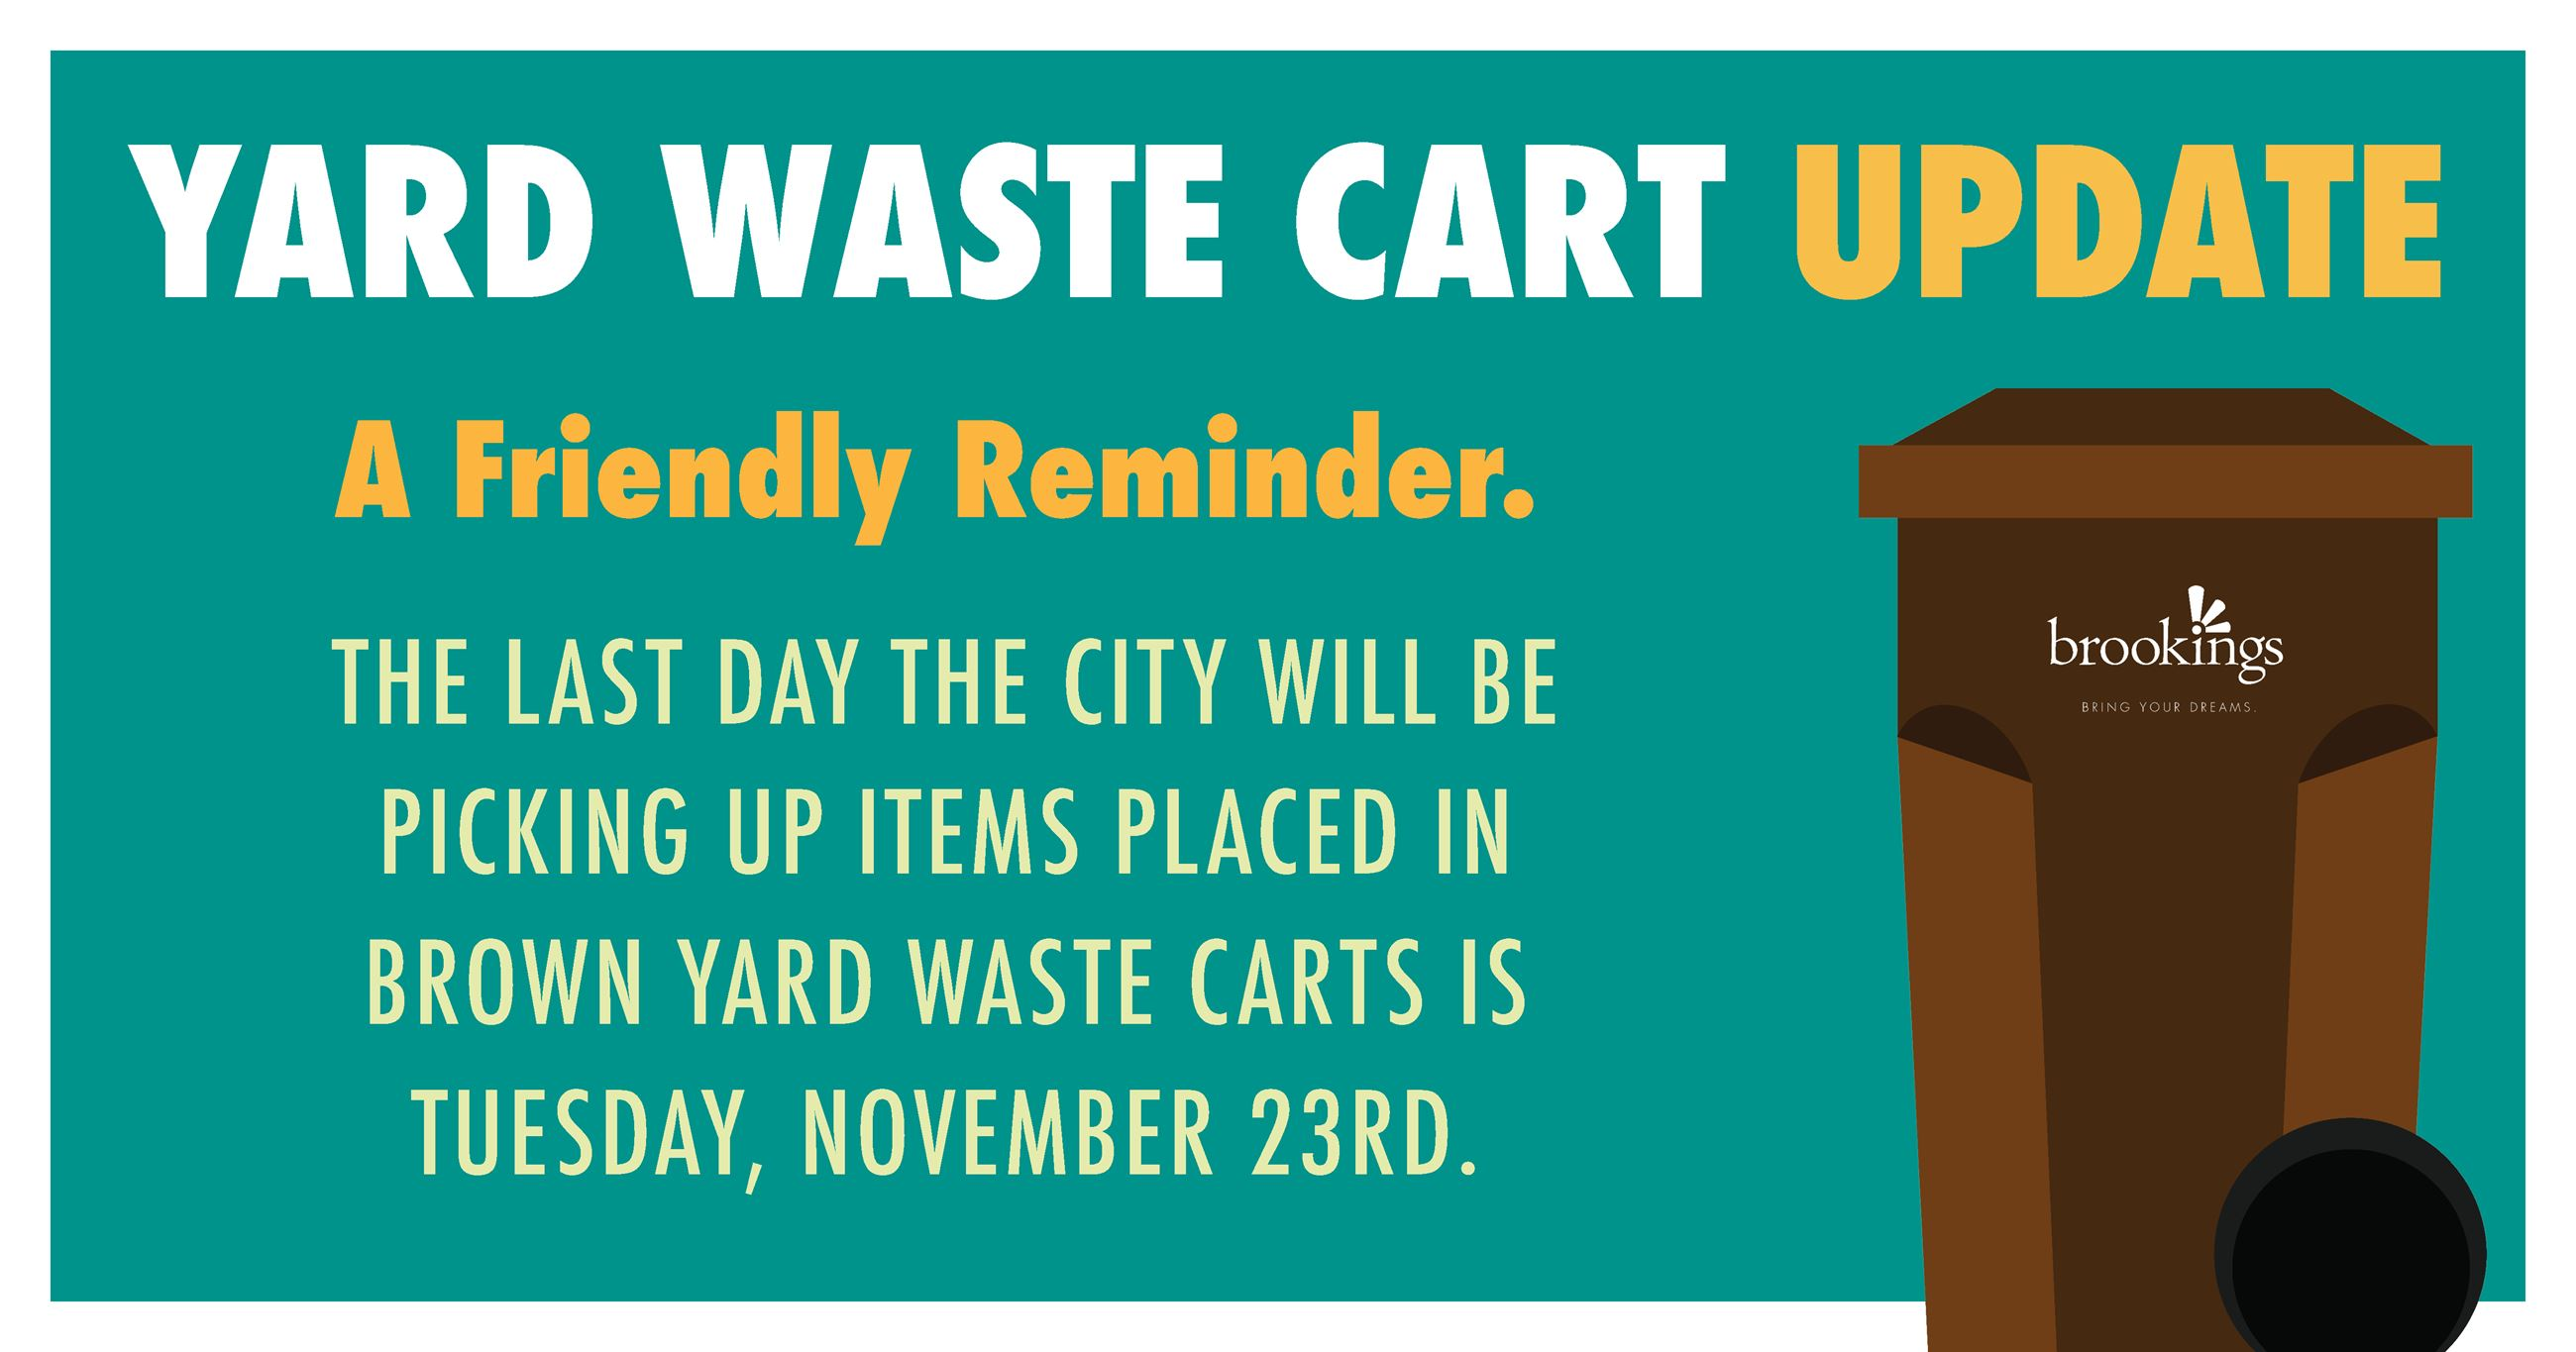 The last day the landfill will pick up yard carts is November 20th